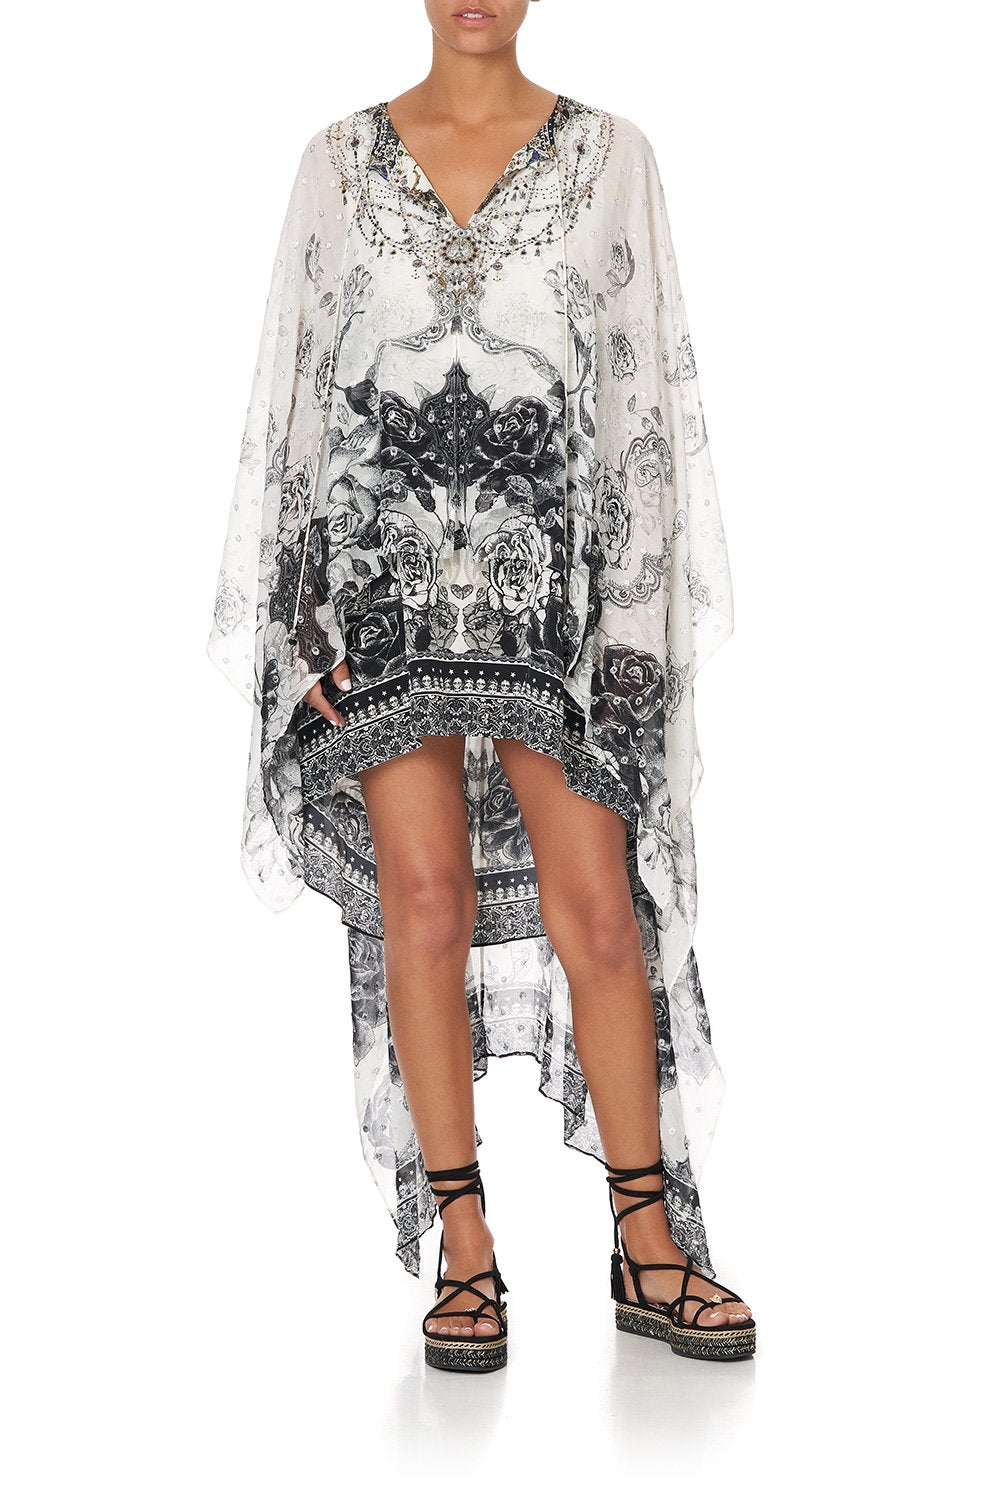 LONG SHEER OVERLAY DRESS MIDNIGHT PEARL